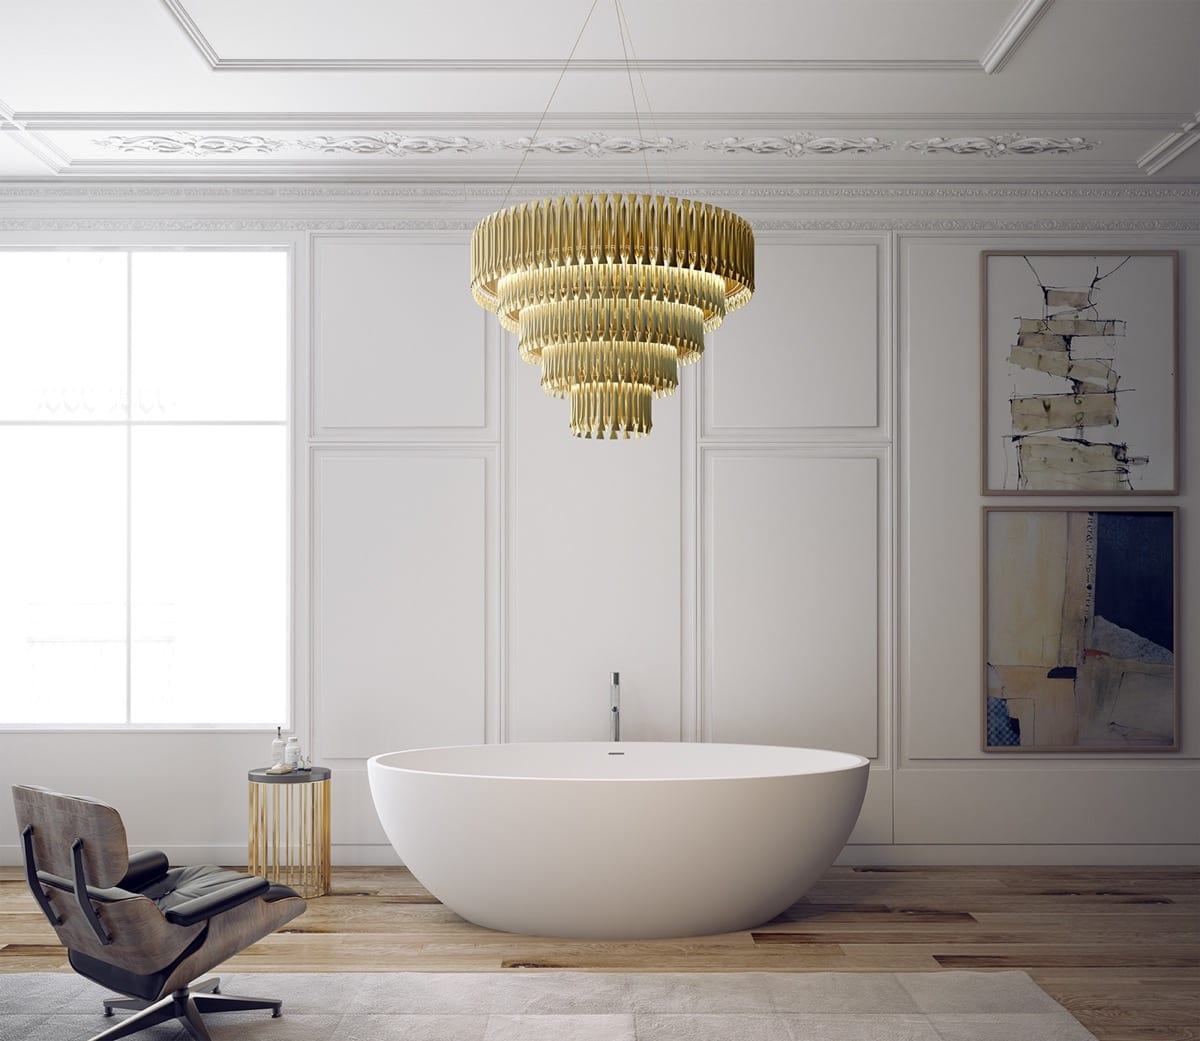 Oval bathtub design ideas